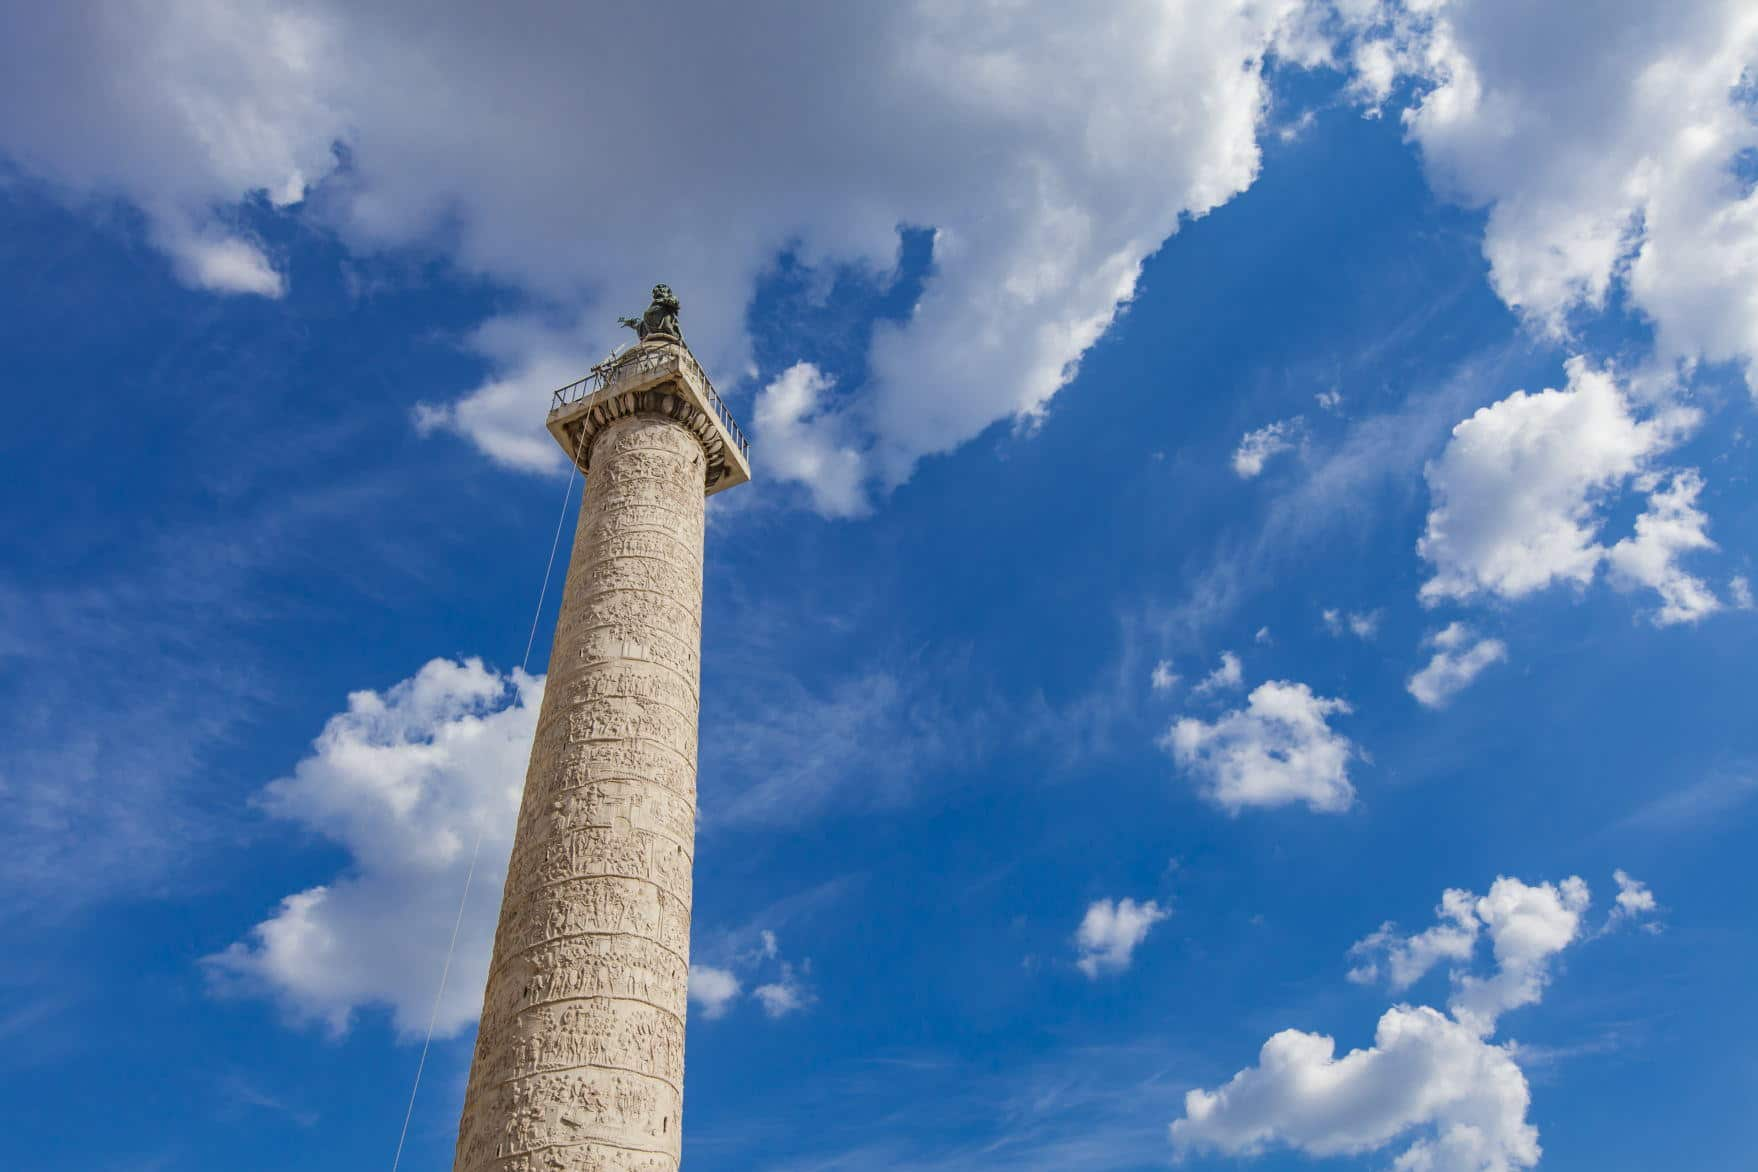 Trajan's Column is a Roman triumphal column that commemorates Roman emperor Trajan victory in the Dacian Wars